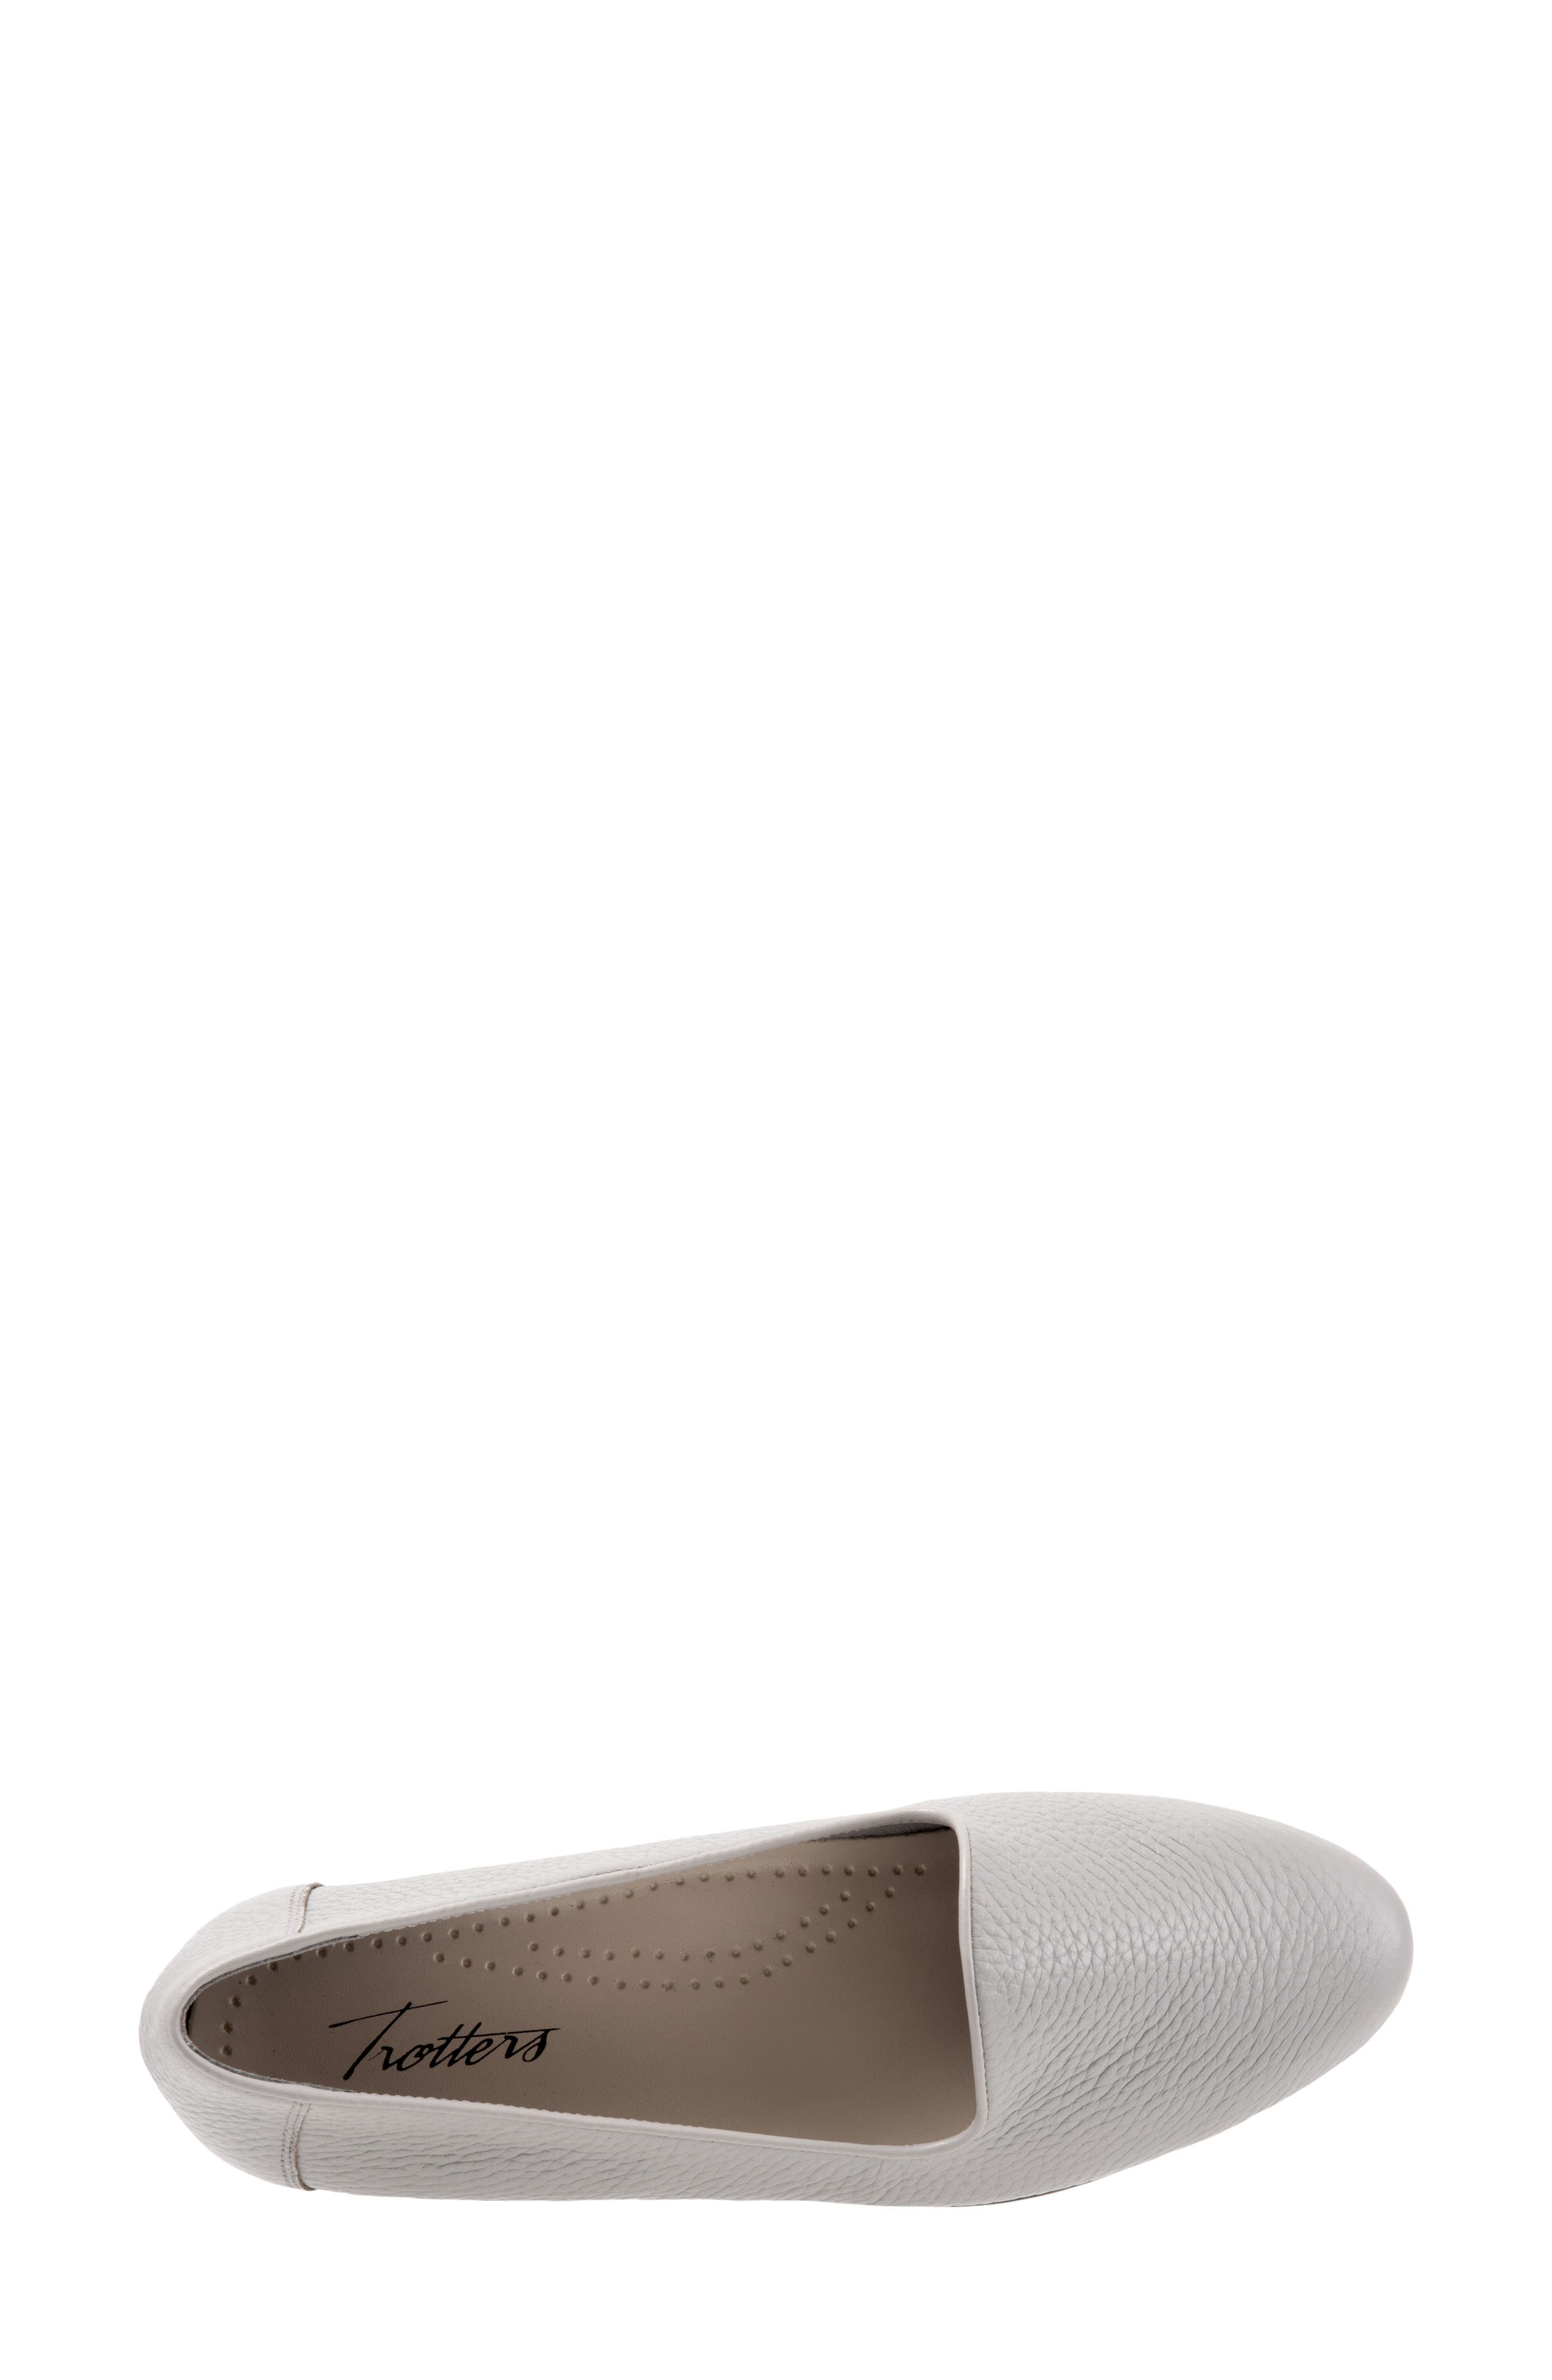 TROTTERS,                             Liz Loafer,                             Alternate thumbnail 5, color,                             GREY LEATHER